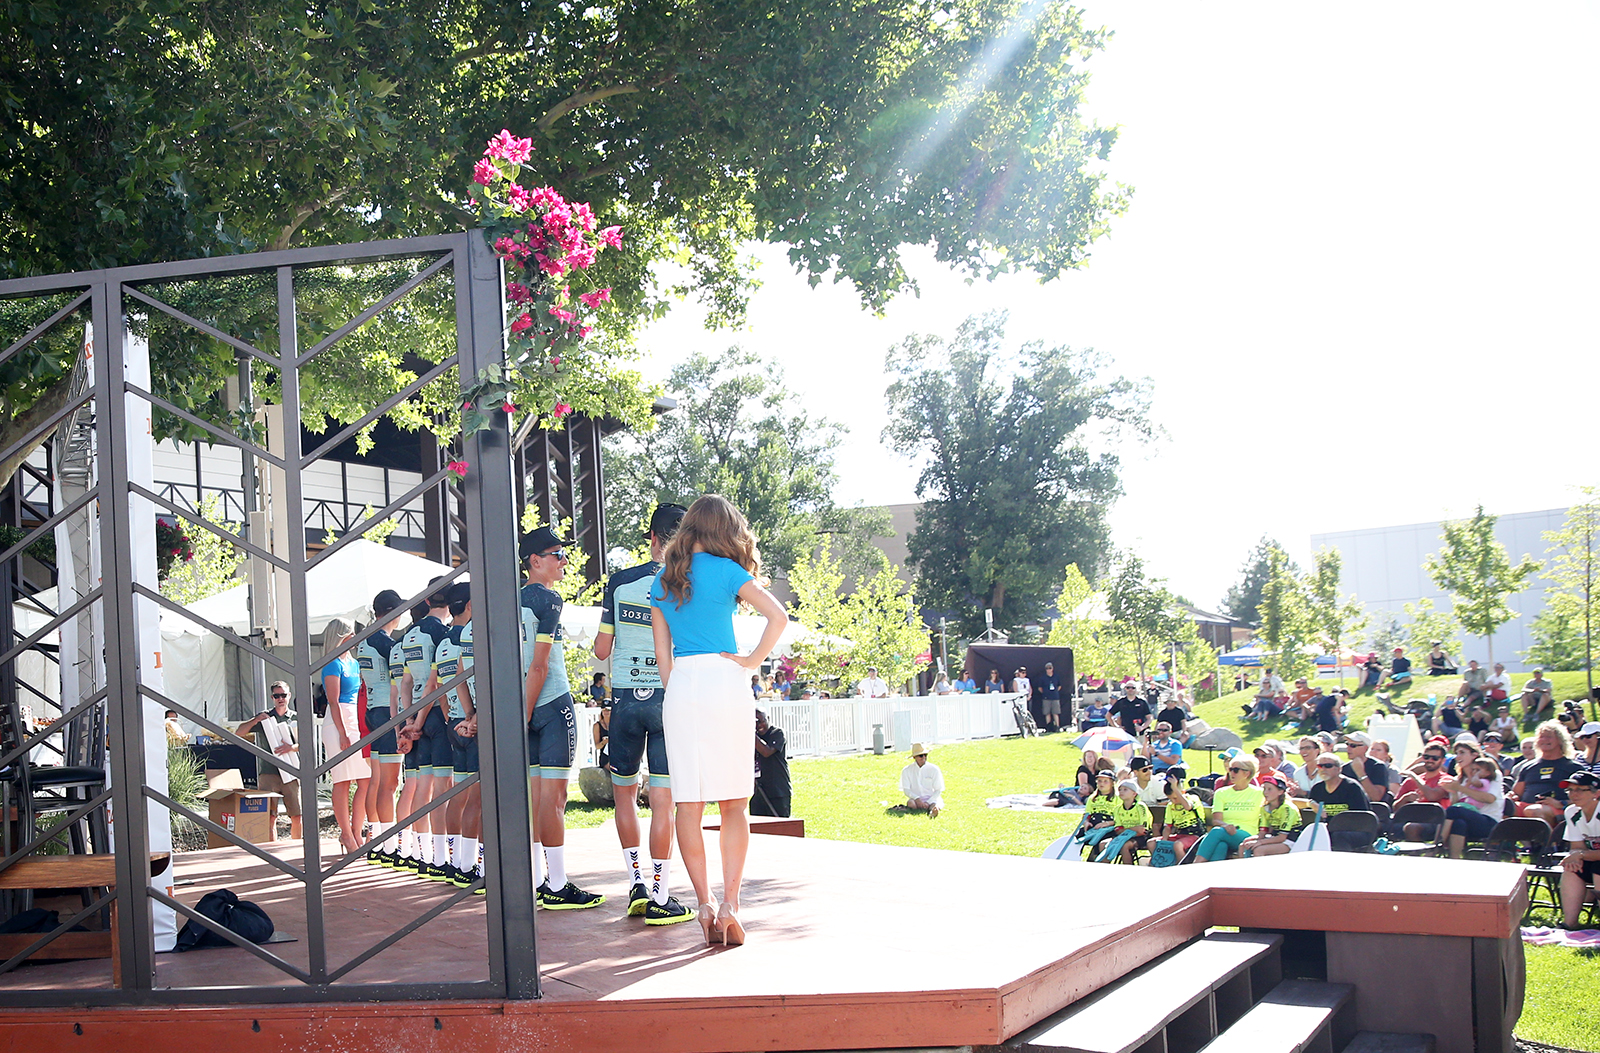 A beautiful day for the Tour of Utah Team Presentation at the Southern Utah University. 2018 Tour of Utah Team Presentation, August 4, 2018, Cedar City, Utah. Photo by Cathy Fegan-Kim, cottonsoxphotography.net